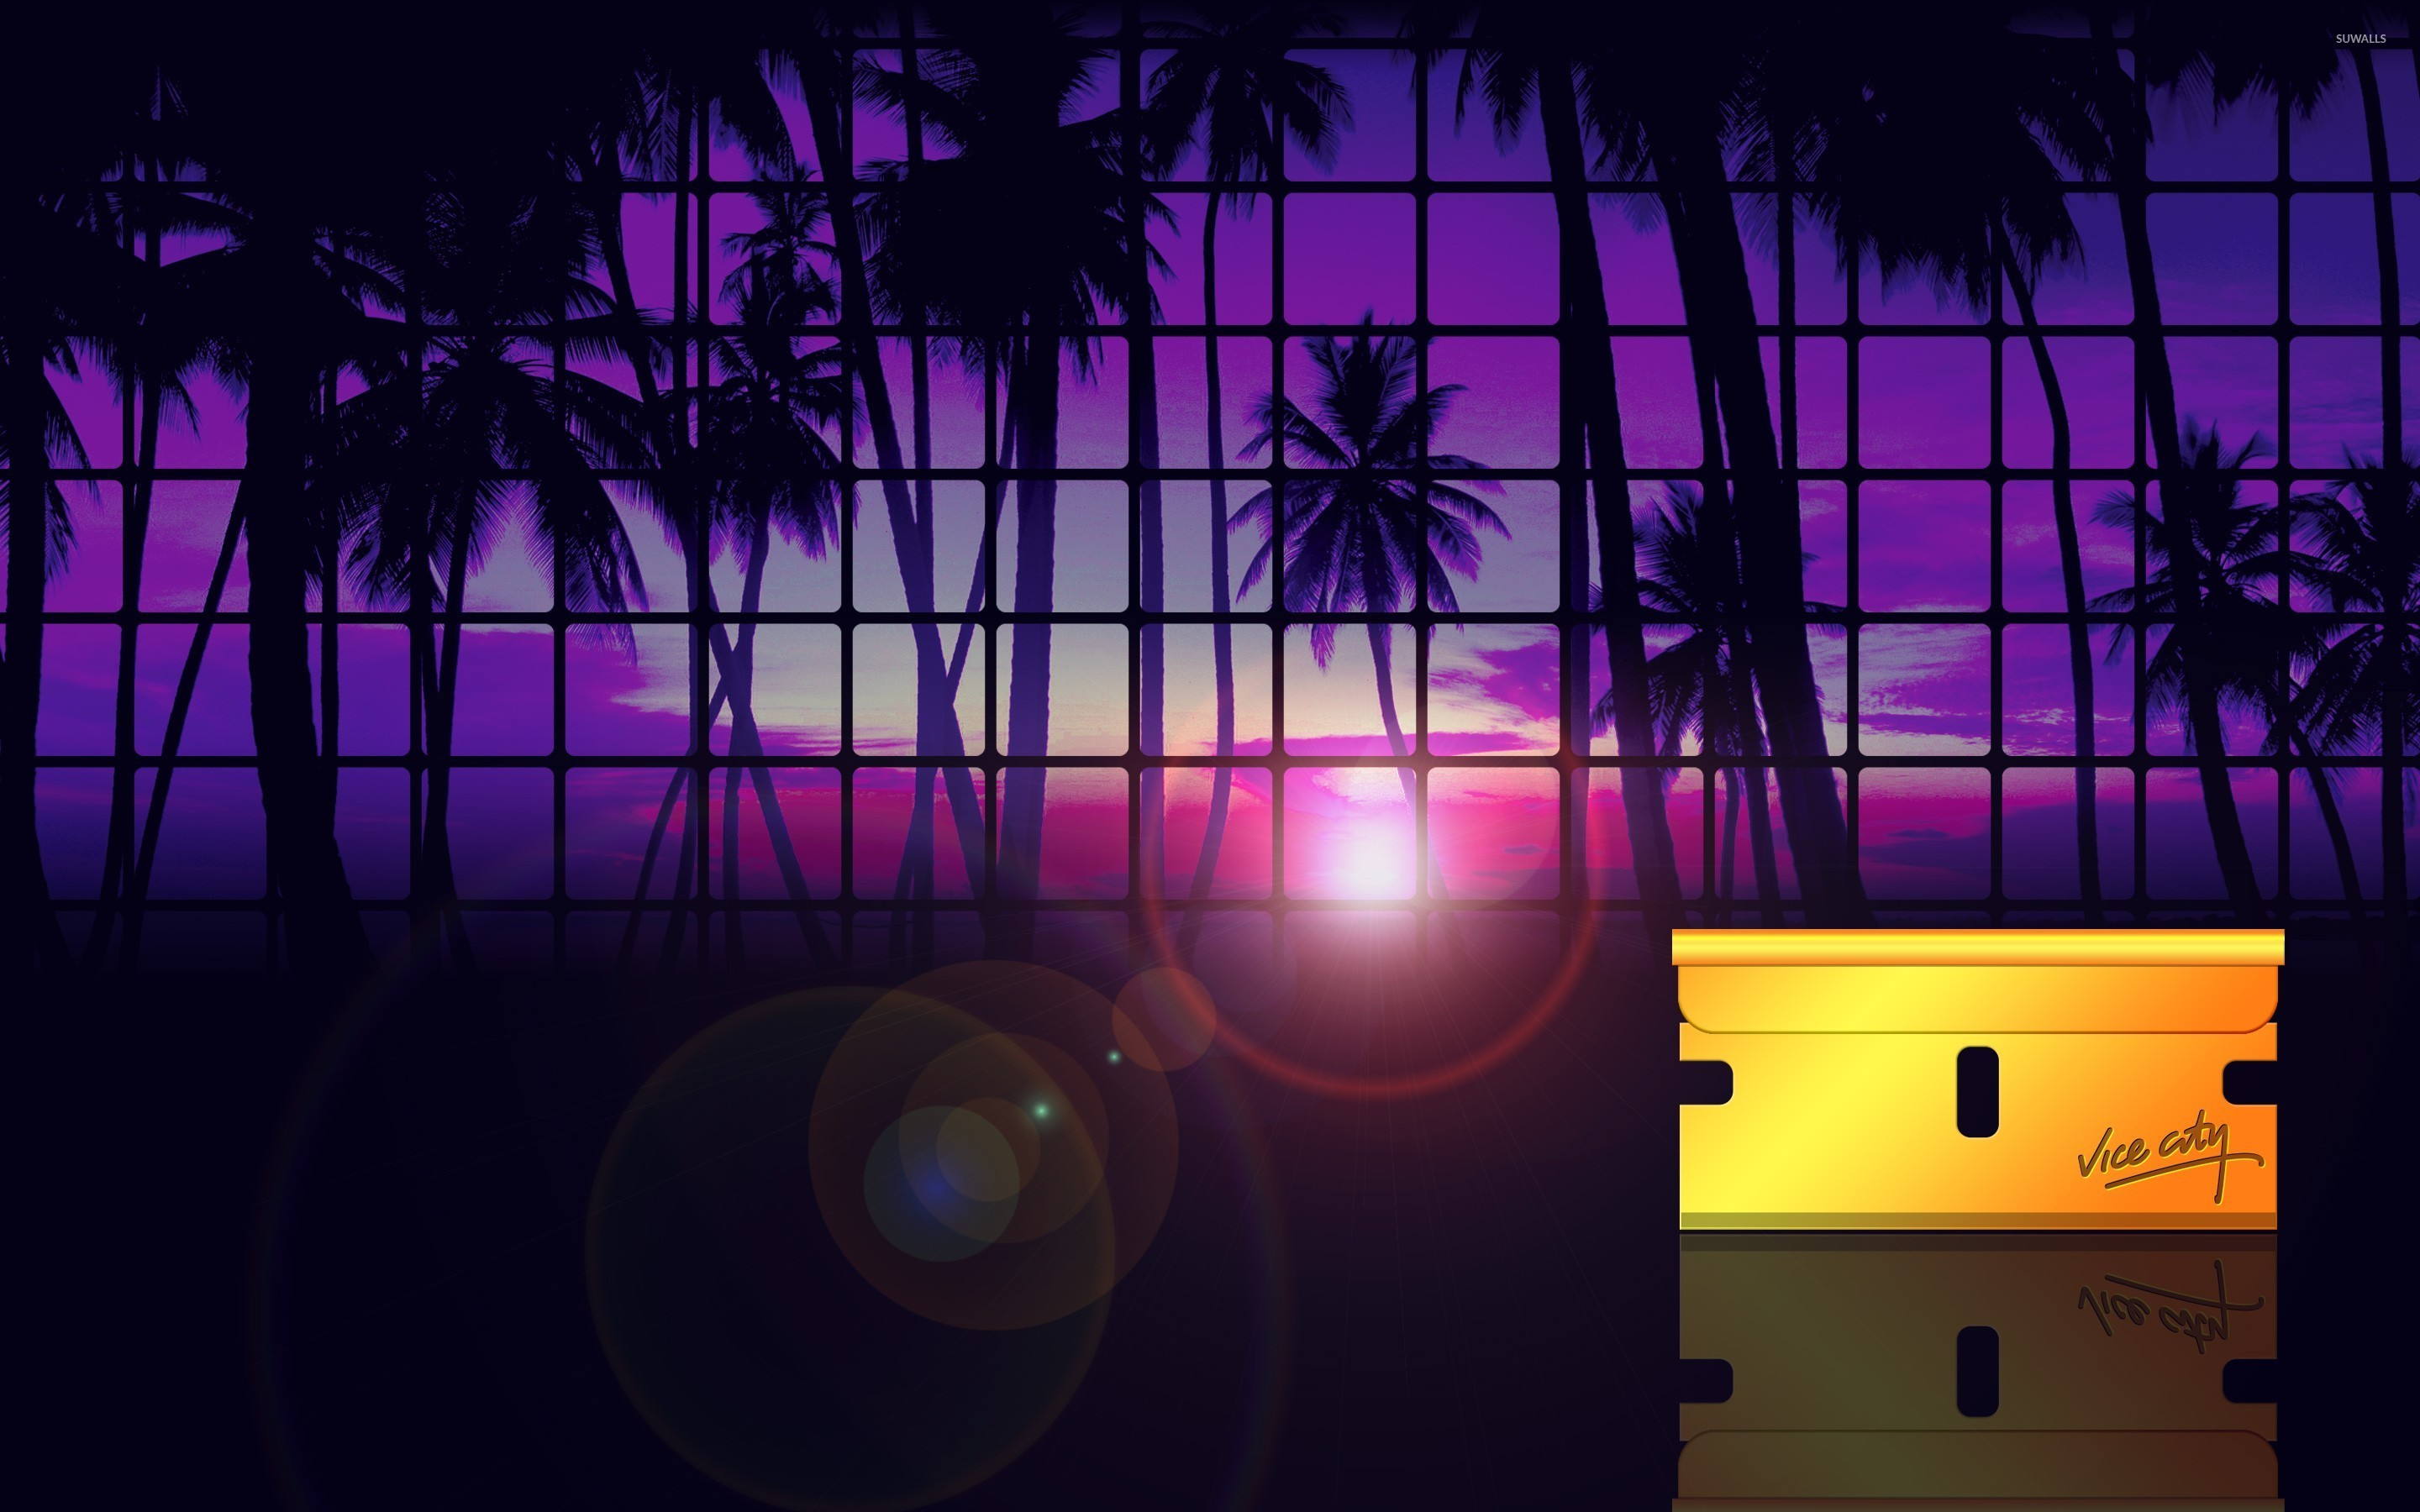 Grand Theft Auto Vice City Sunset Wallpaper Game